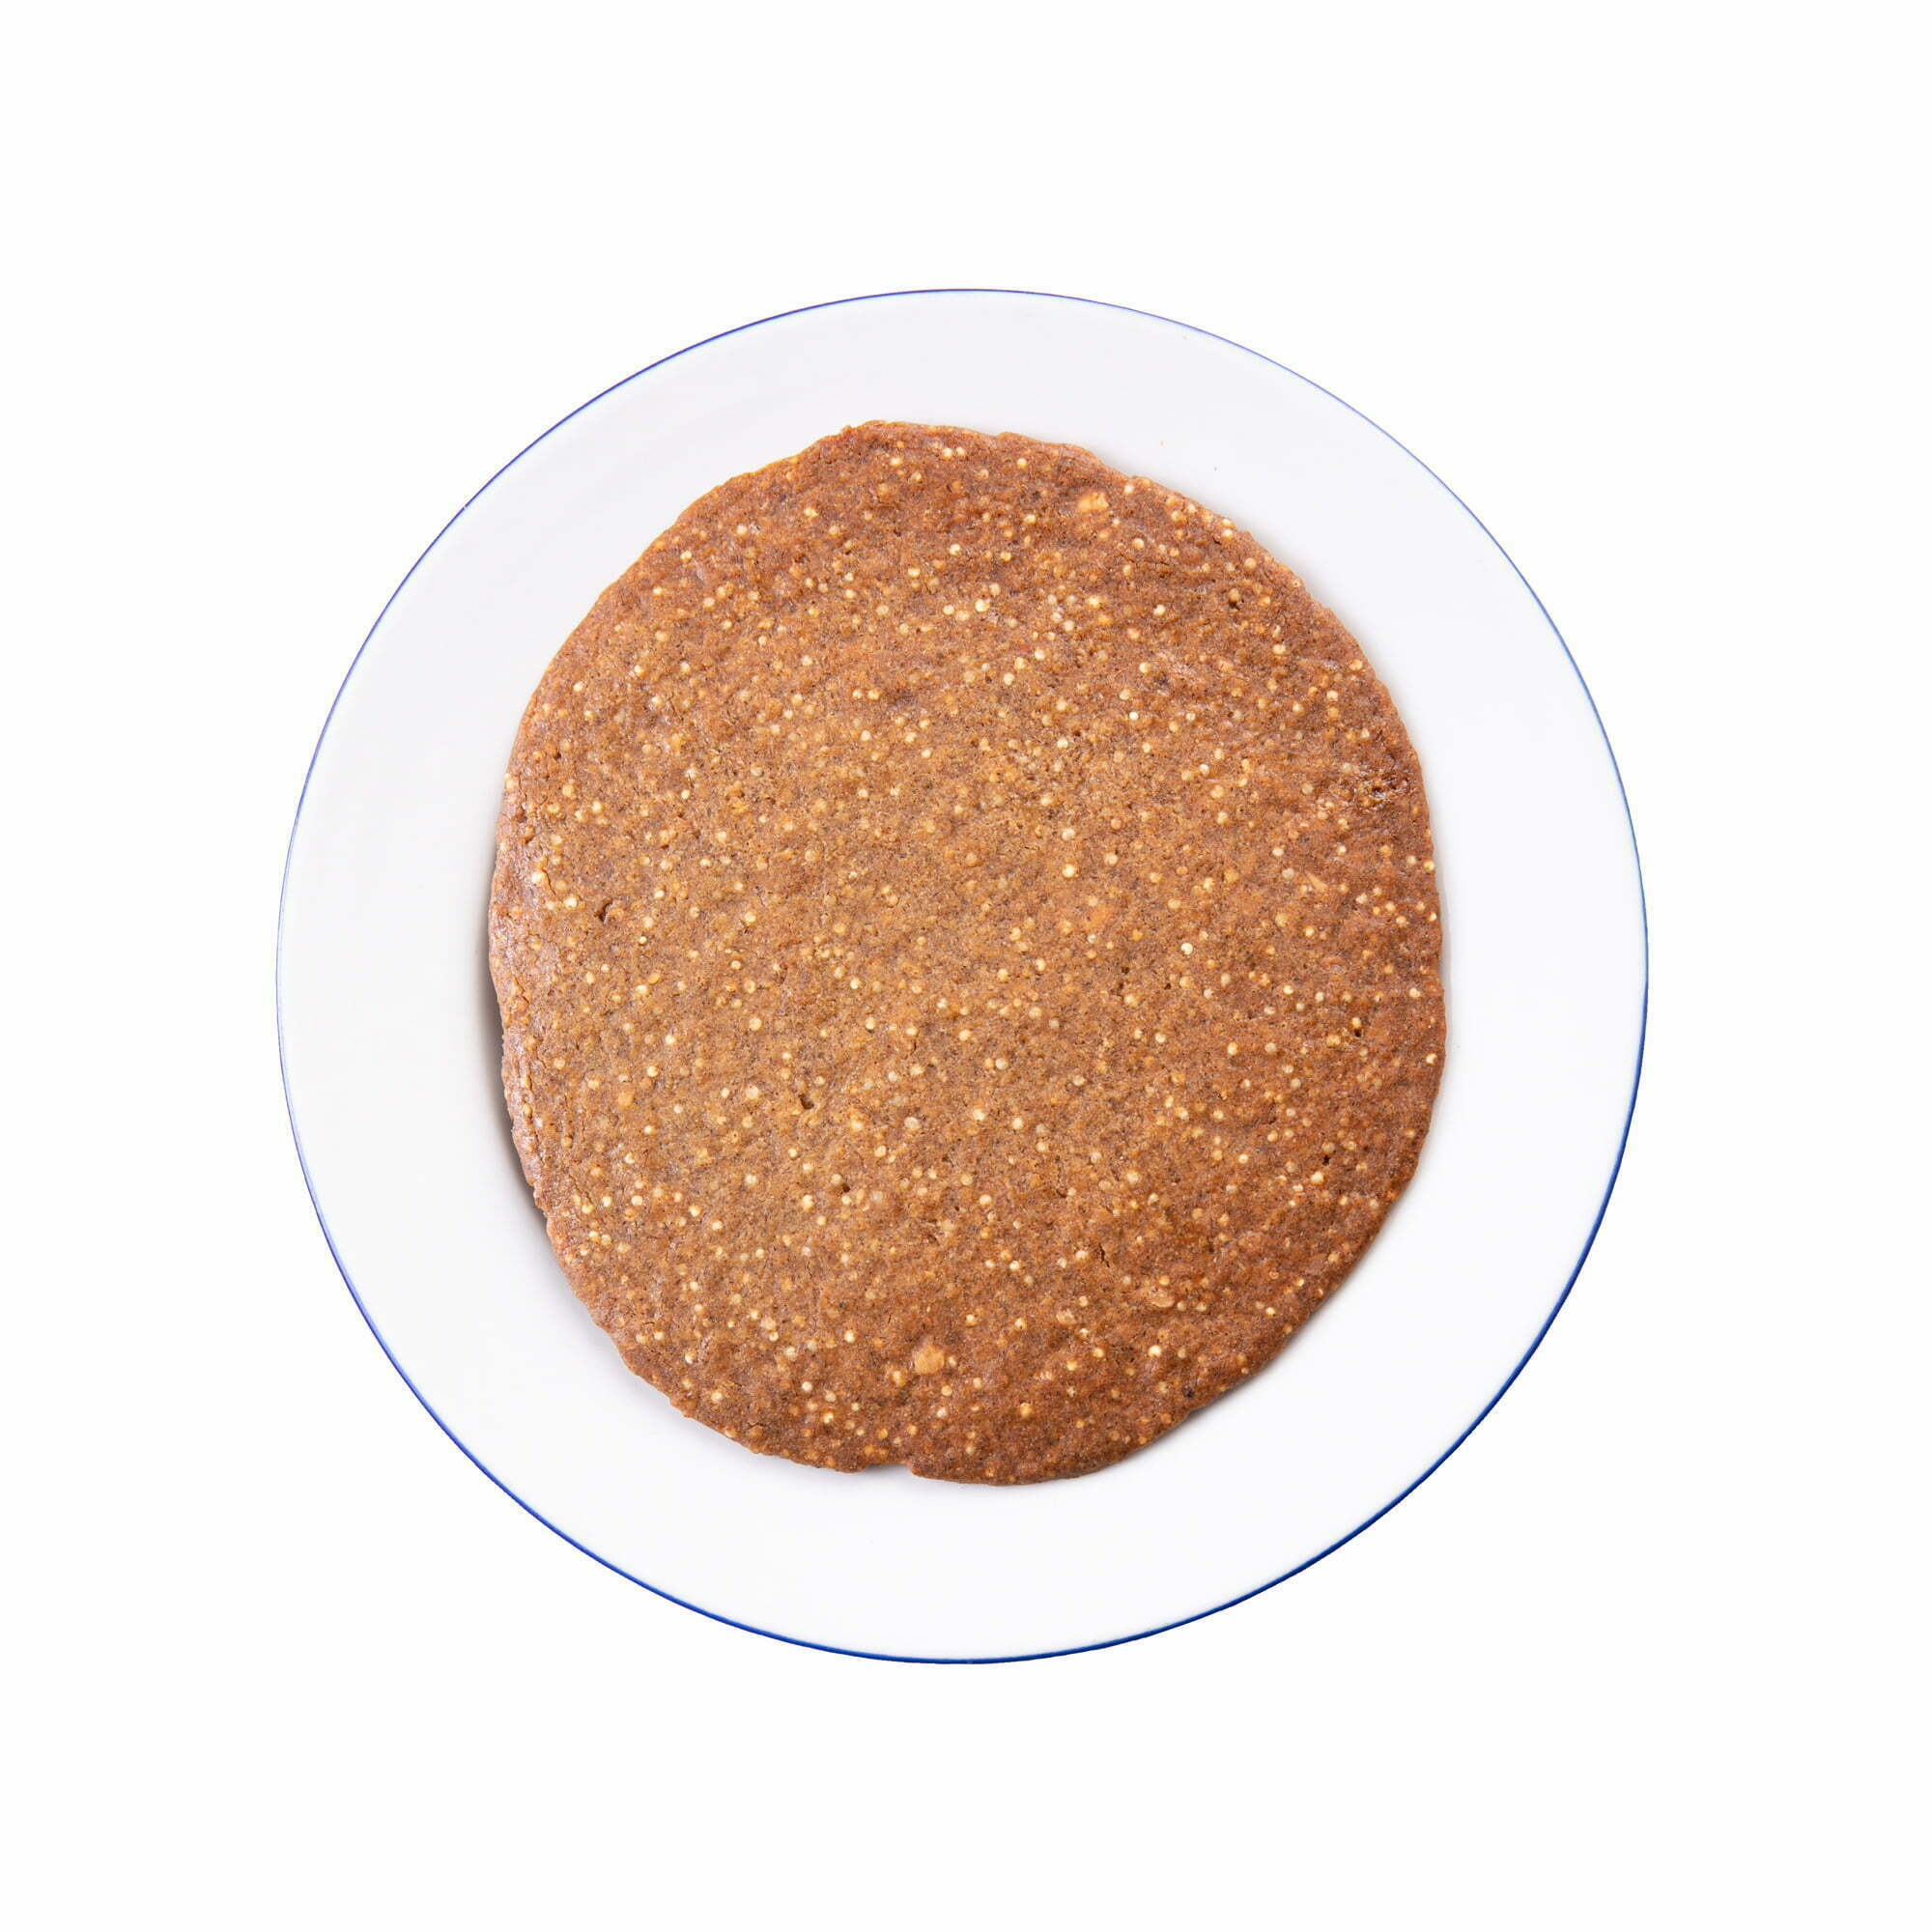 Quinoa Peanut Butter Cookie